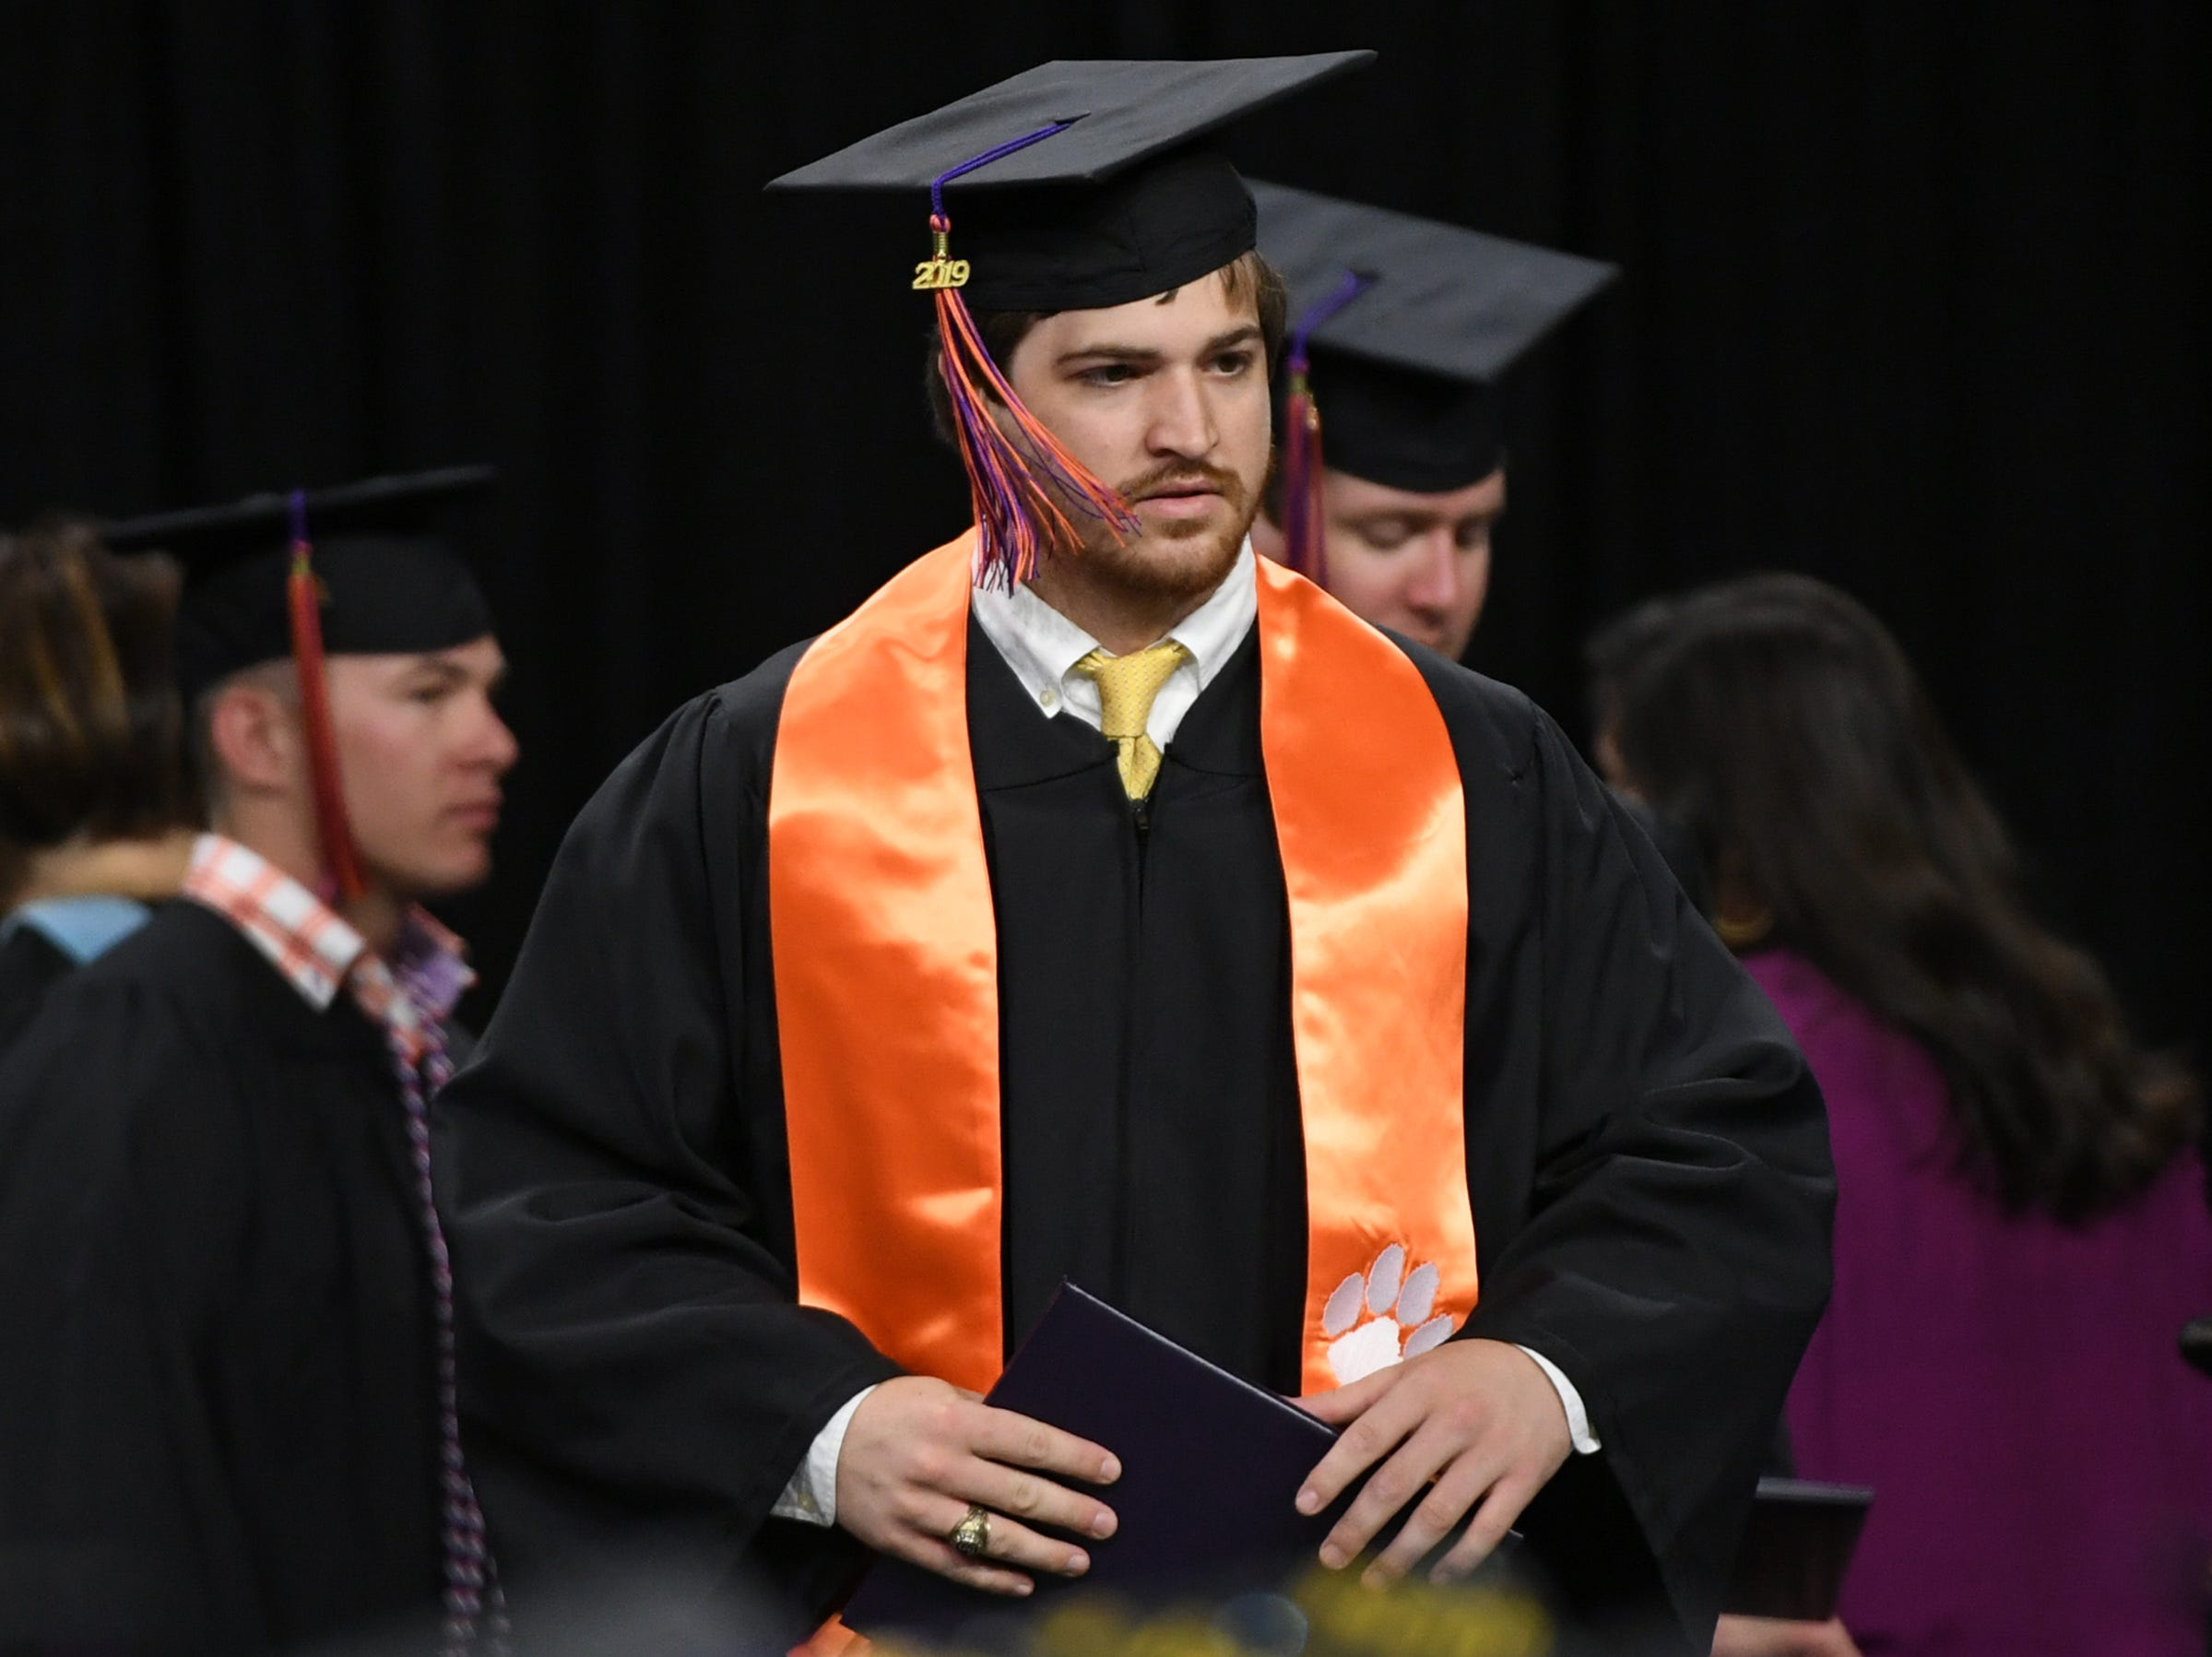 James Barnes of Sumter, a former Clemson football quarterback, earned a Bachelor of Science in Agricultural Mechanization and Business during Clemson University commencement ceremonies in Littlejohn Coliseum in Clemson Friday, May 10, 2019.